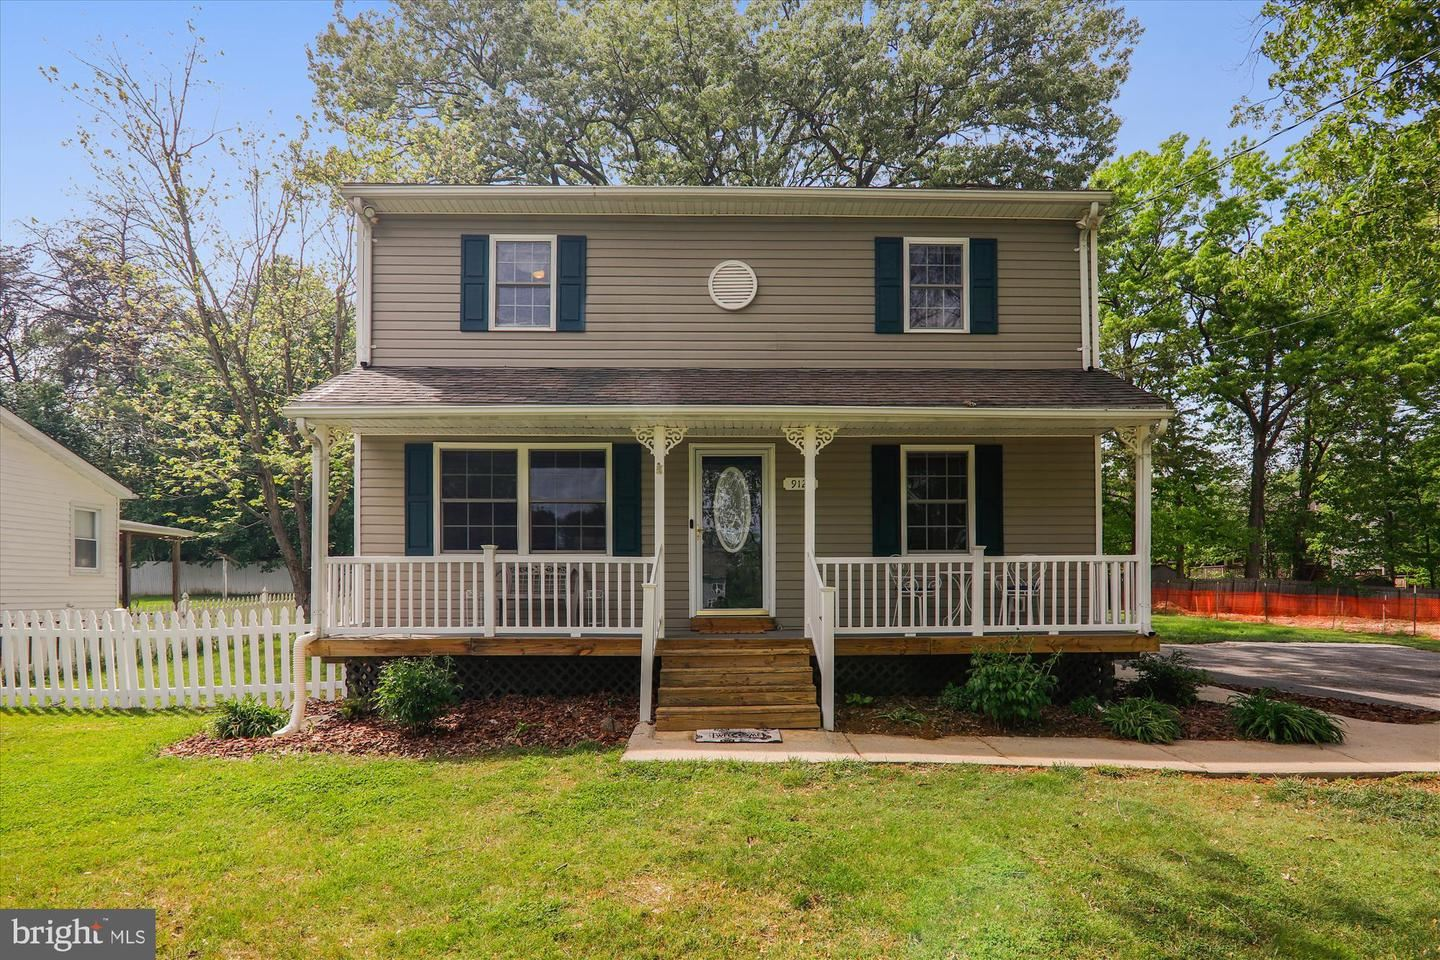 9120 GRANT AVE, Laurel, MD 20723 - MLS#: MDHW293600